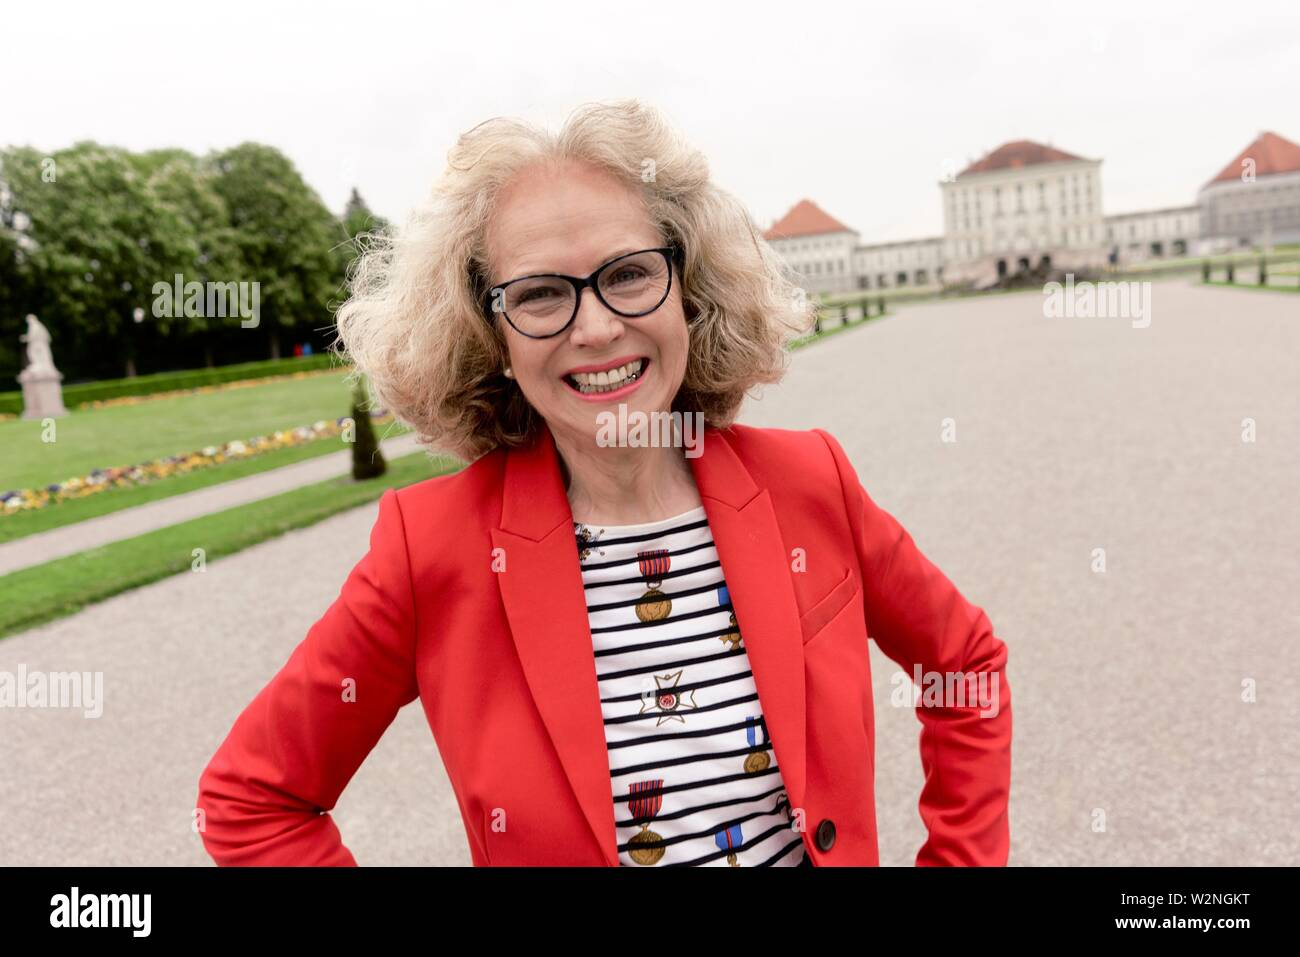 happy senior woman (67 years old) in park next to touristic attraction Schloss Nympenburg, in Nymphenburg, Munich, Germany. - Stock Image